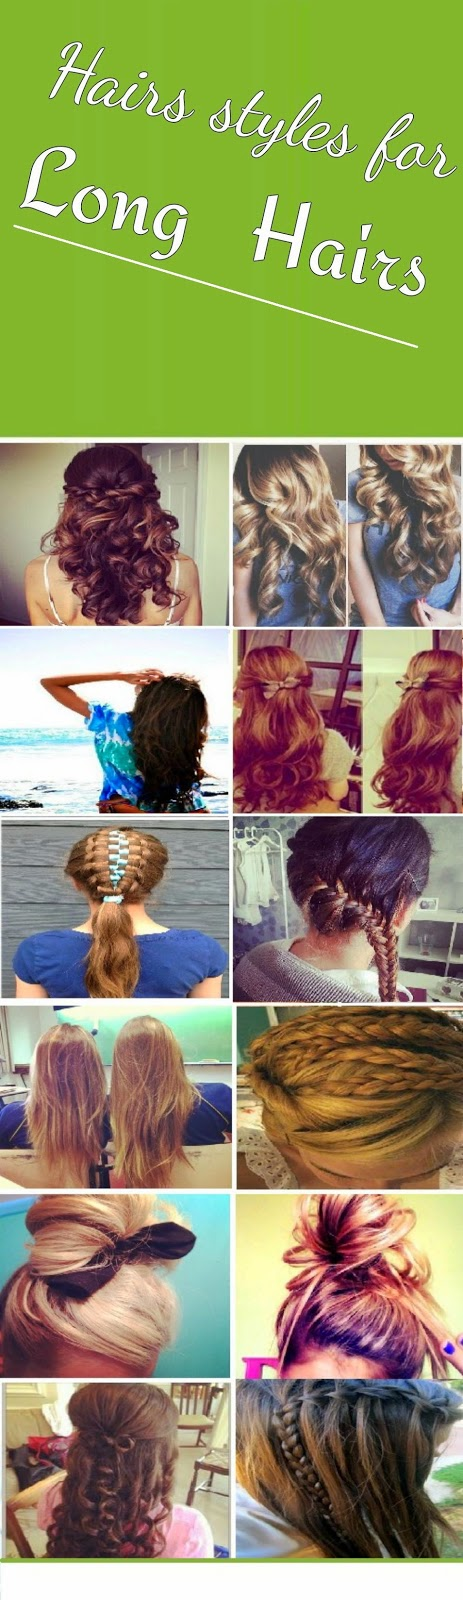 Hair styles for long hairs